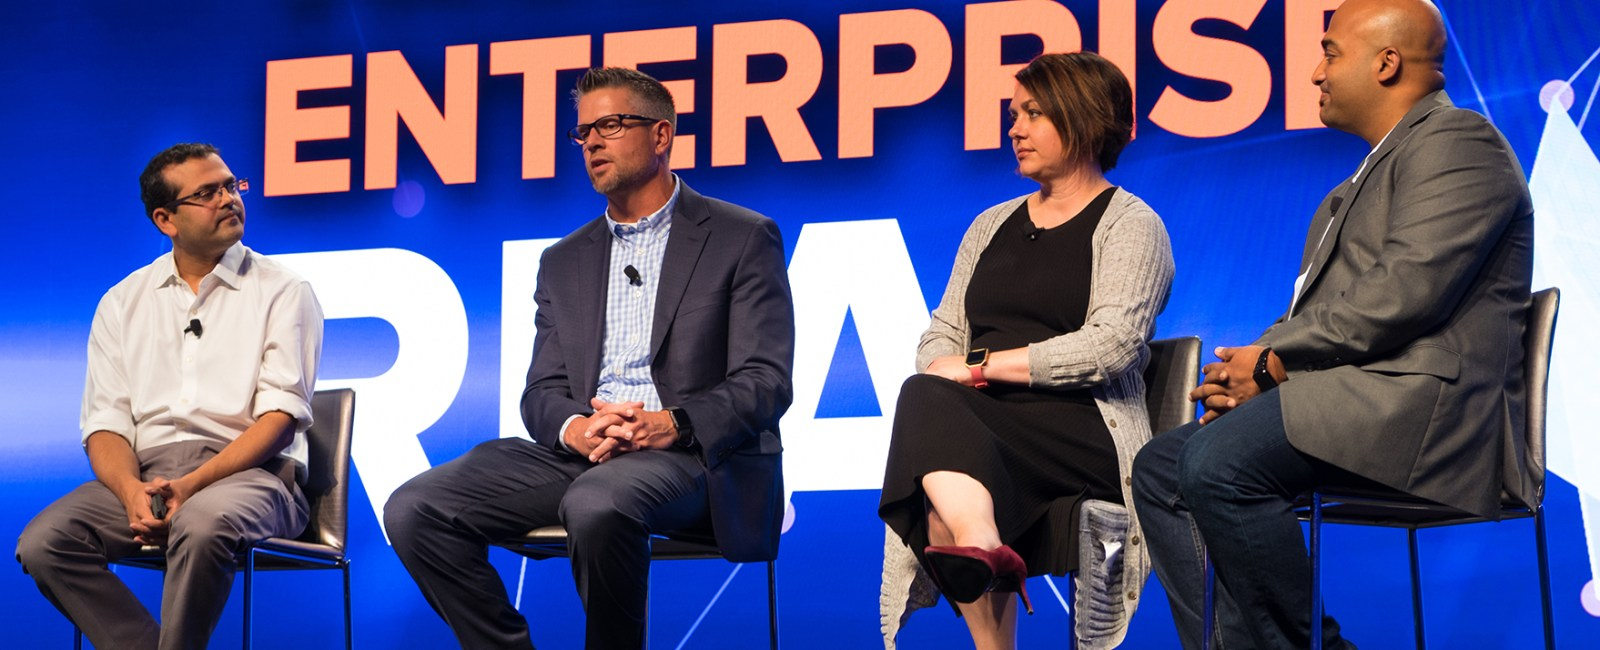 UiPath Launches $20 Million Fund and New Marketplace to